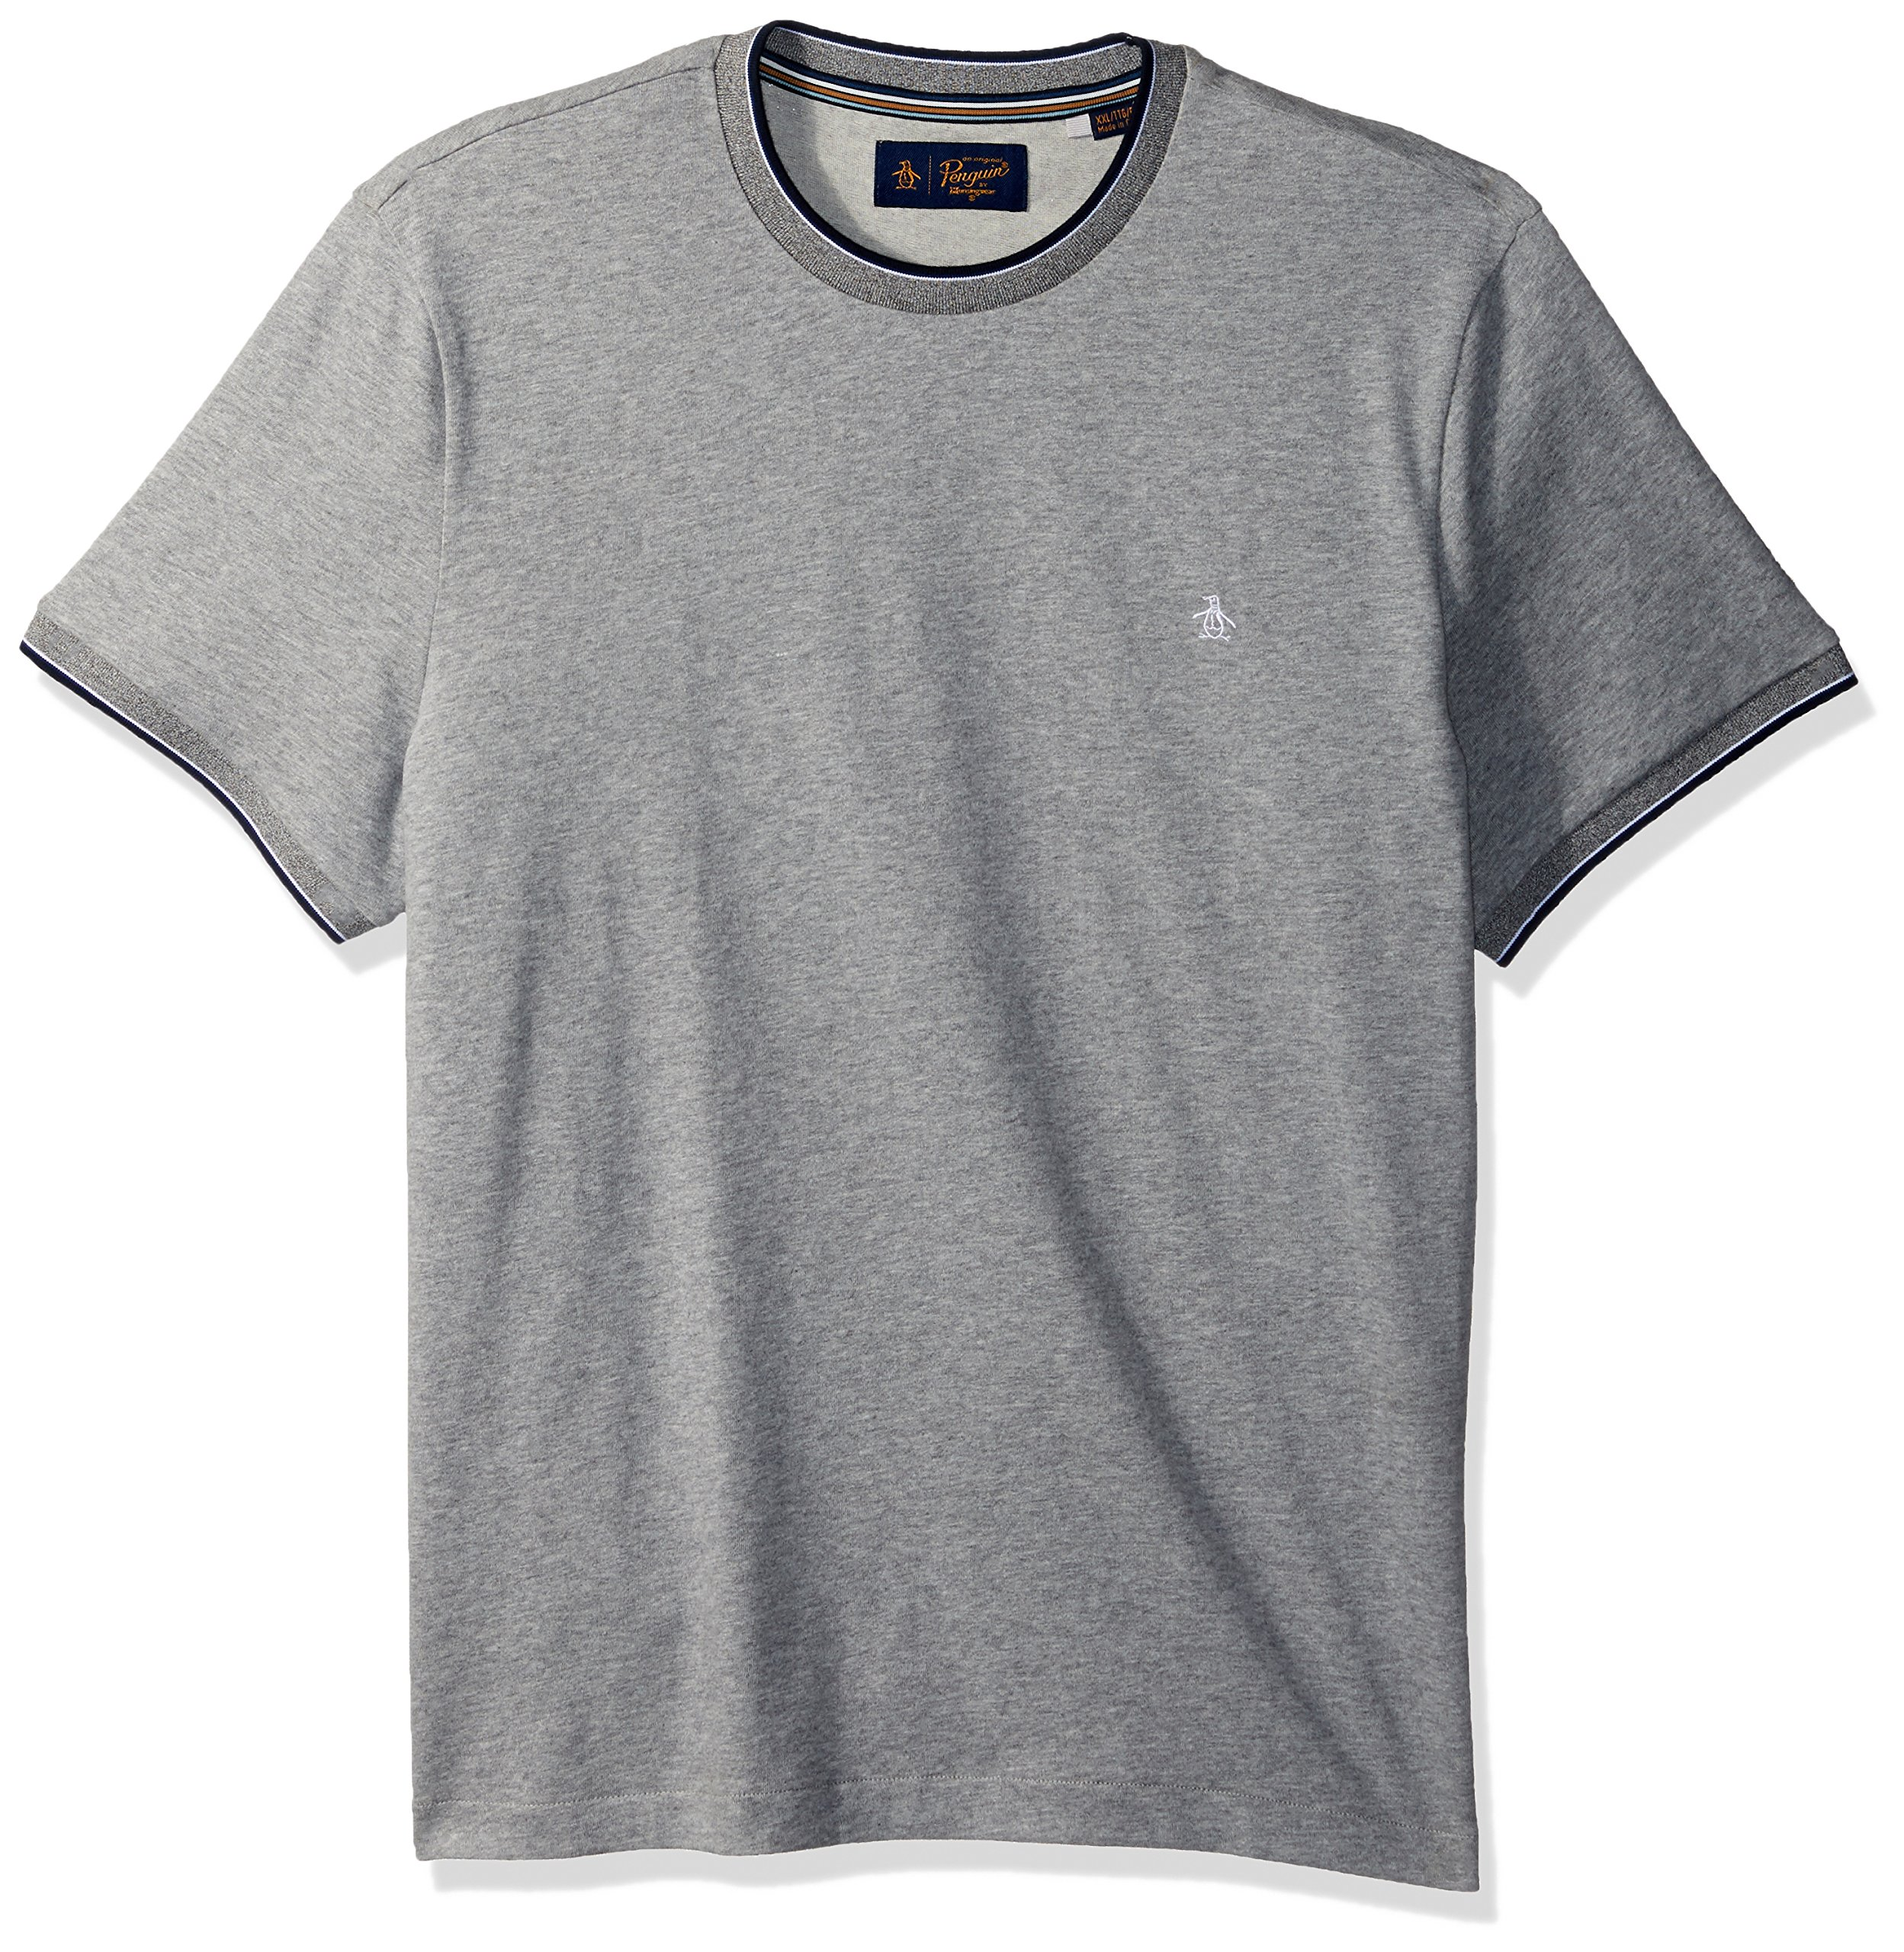 Original Penguin Men's Short Sleeve Sueded Tipped Tee, Athletic Grey Heather, Large